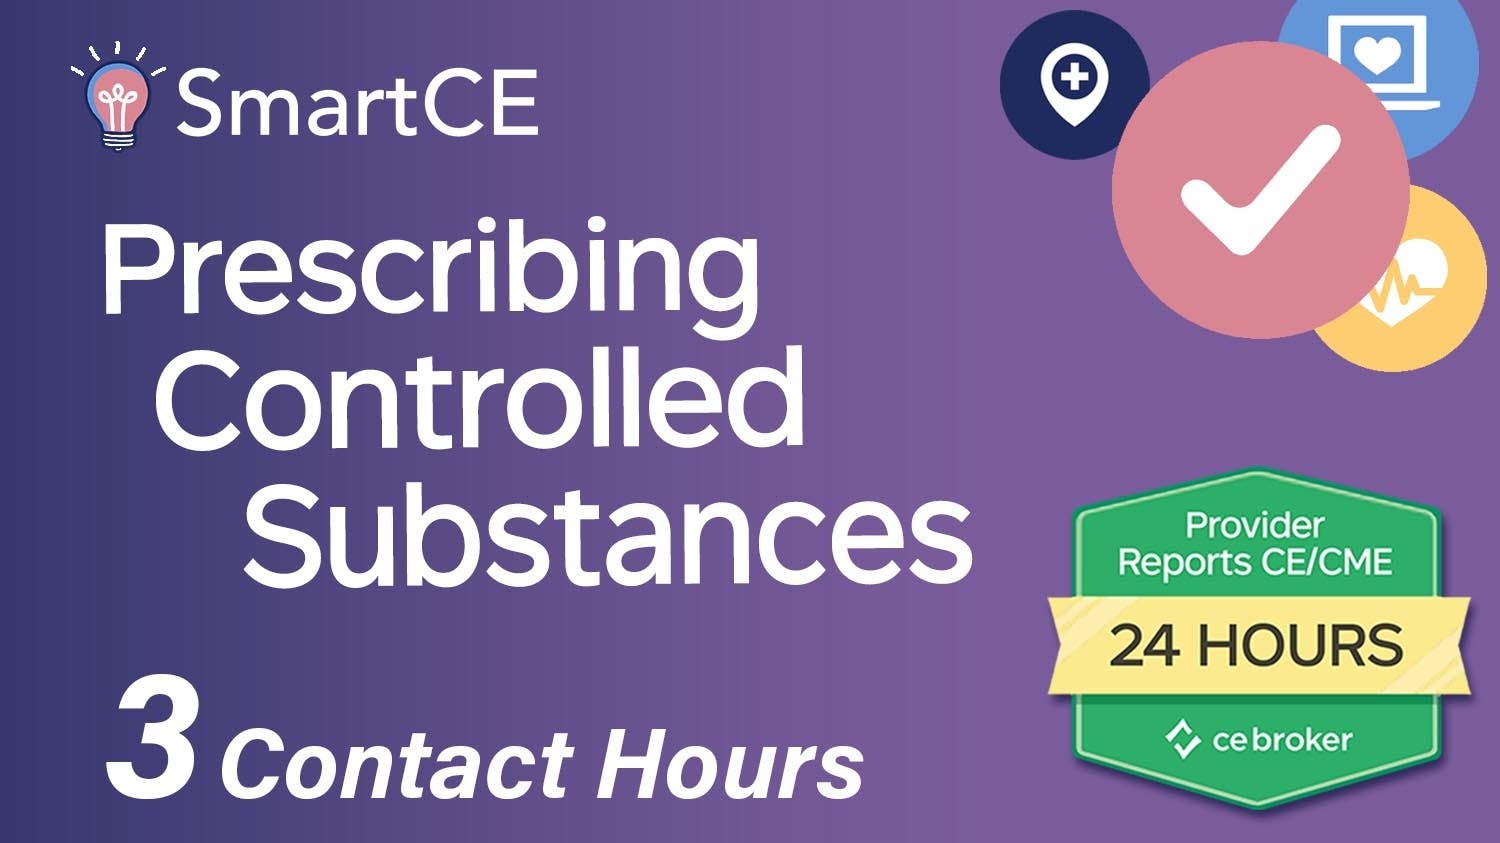 Prescribing Controlled Substances And Drug Diversion, Best Practices - 3 Contact Hours /20-660989